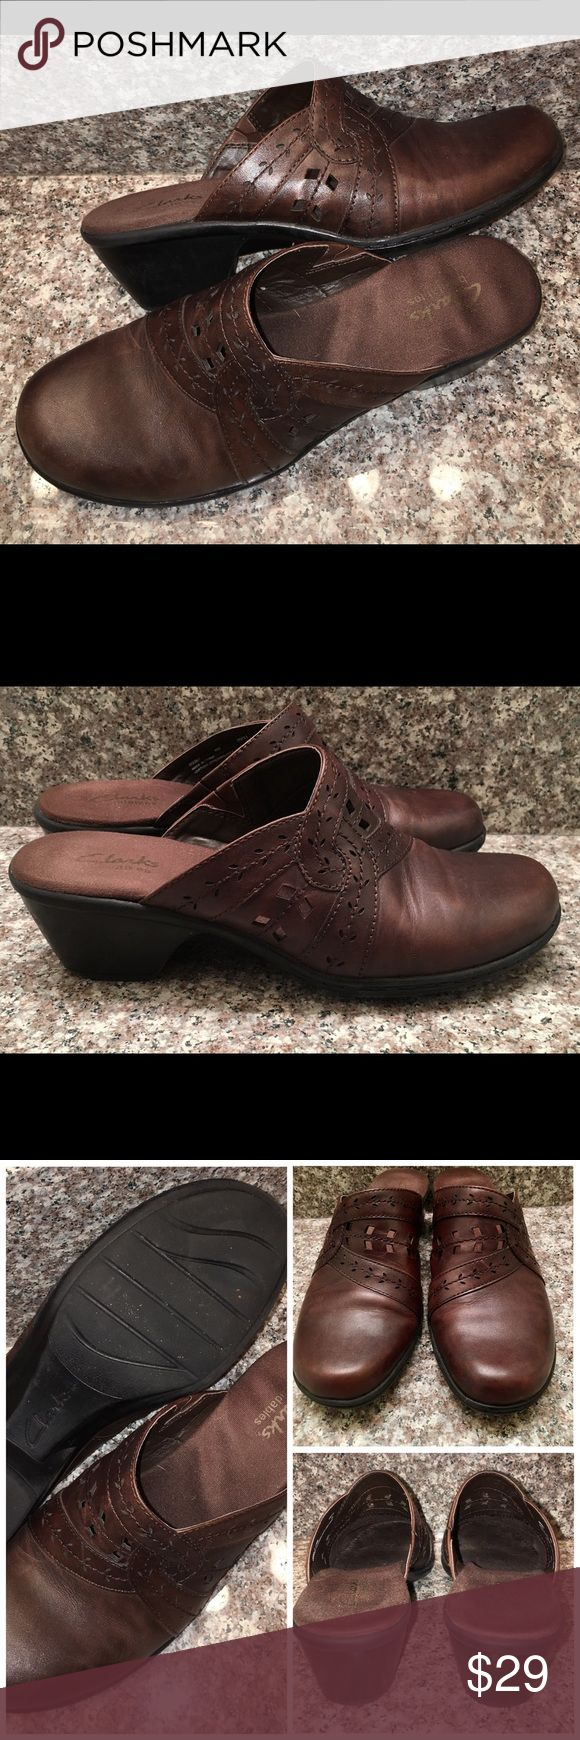 CLARKS Bendables Brown Mule Clog Shoes Sz 8 M These are the CLARKS Bendables Mule Clogs Shoes in a sz 8M❤good used condition ❤the shoes are brown with interesting cut out accents❤happy poshing friends! Clarks Shoes Mules & Clogs